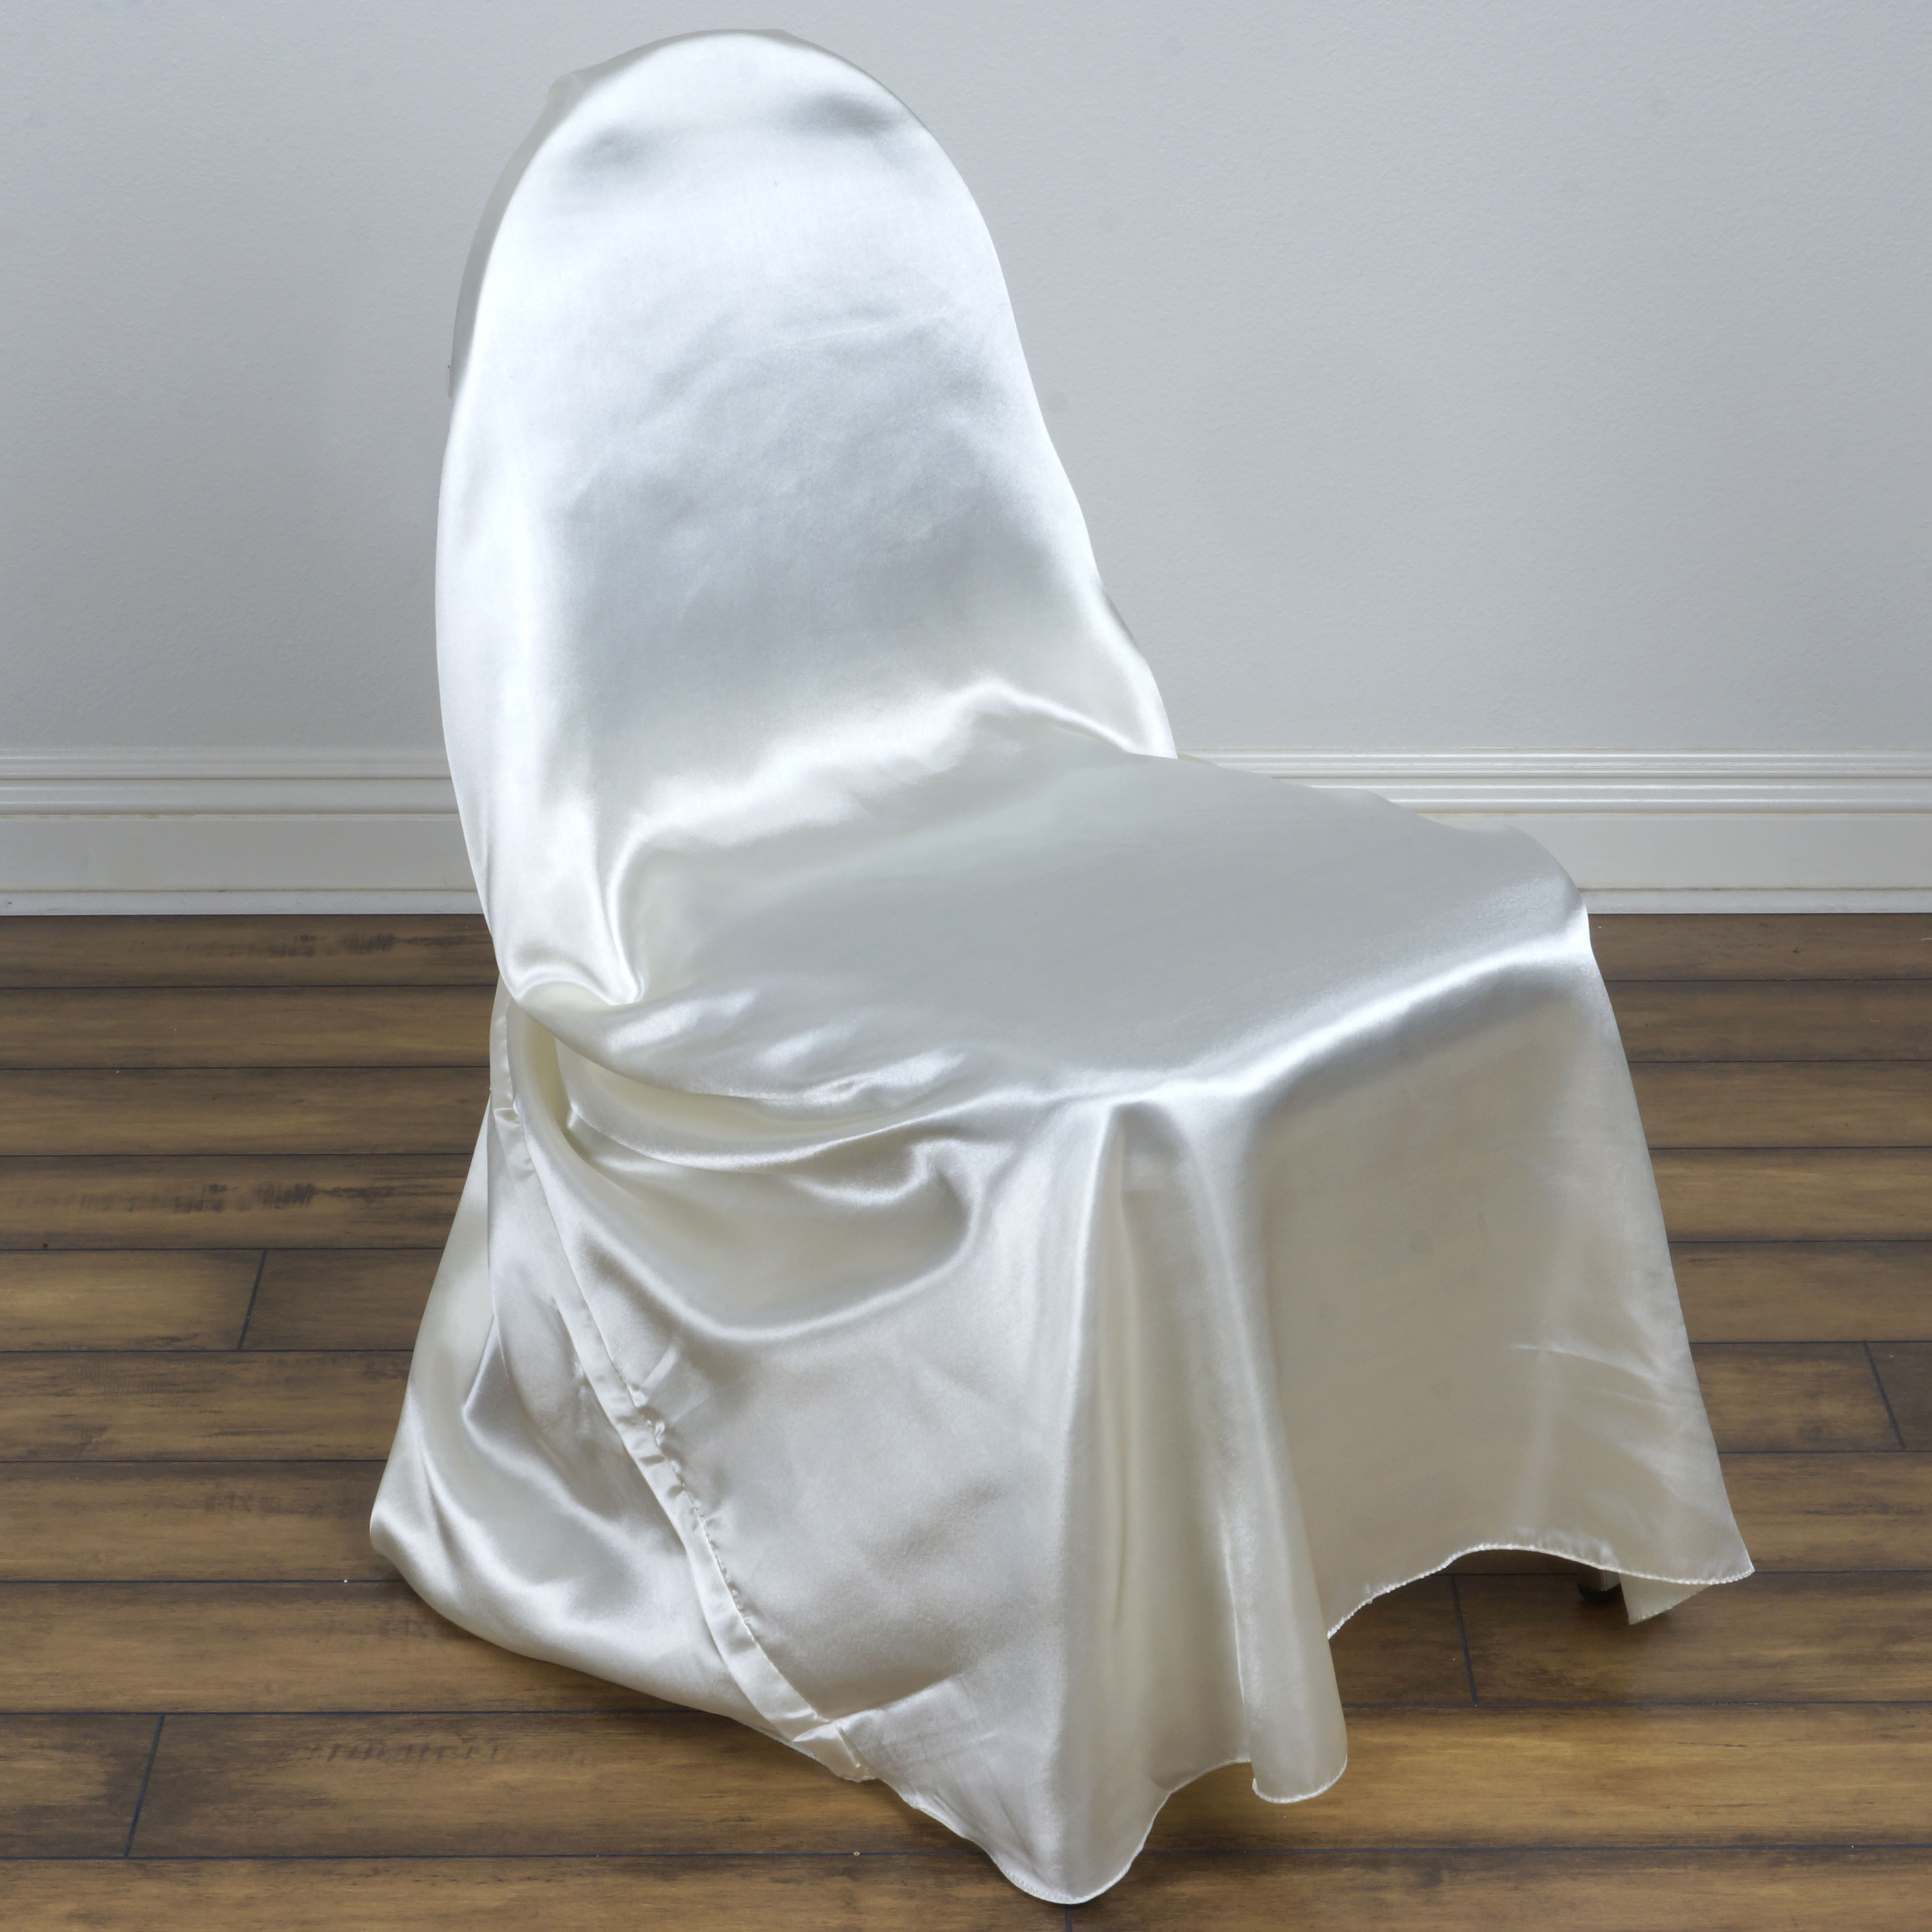 Chair Covers For Wedding 100 Pcs Satin Universal Chair Covers Wholesale Wedding